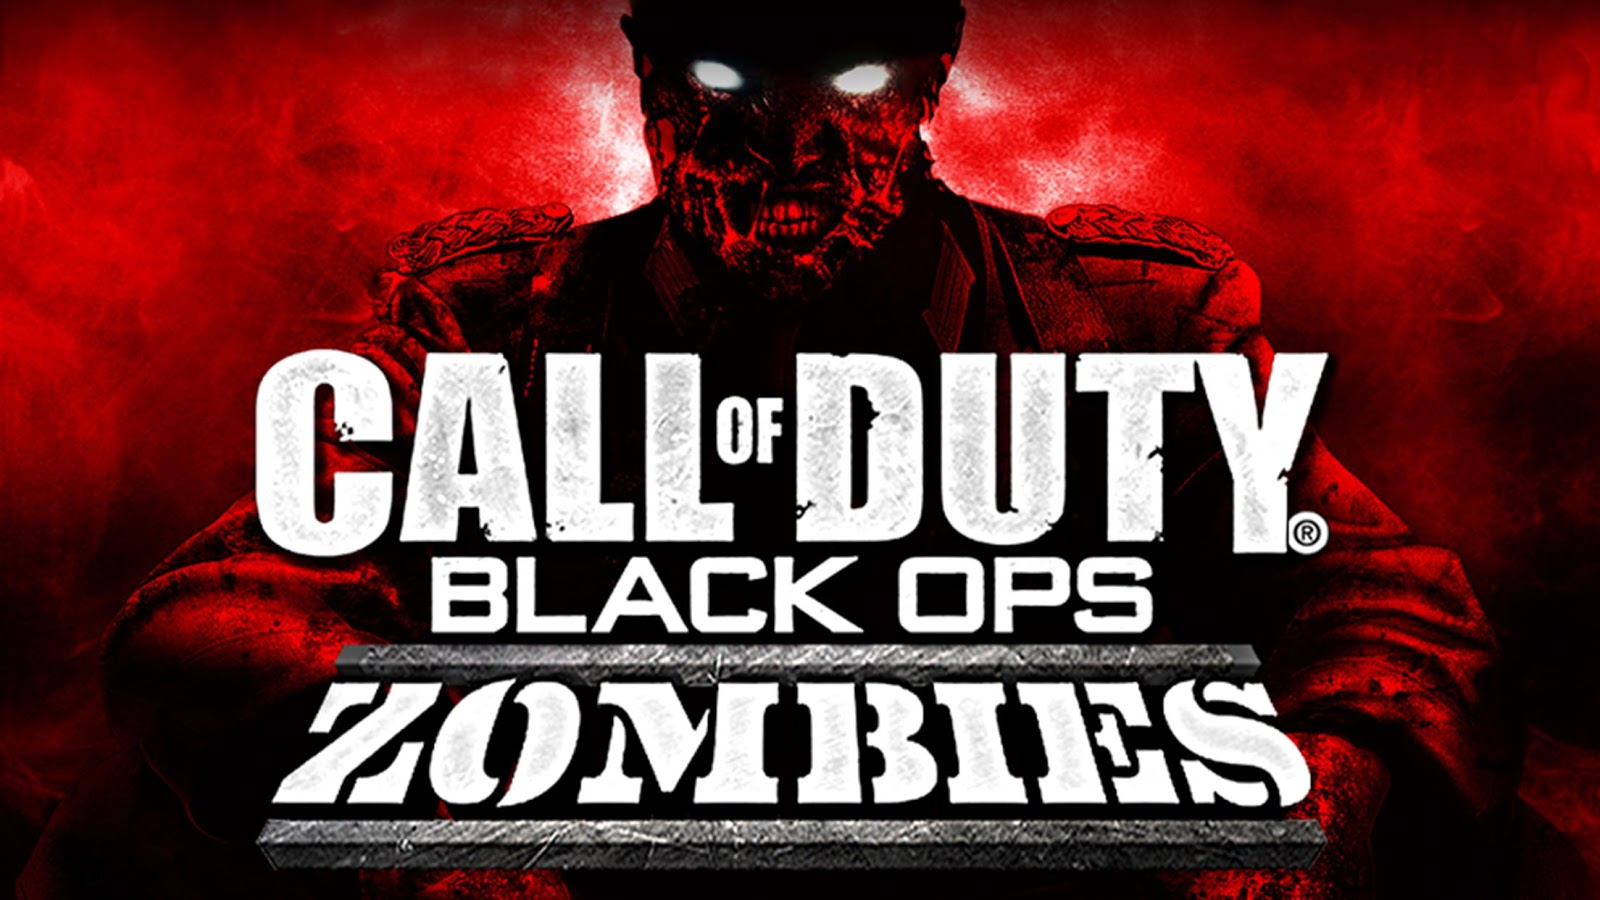 Tải Call of Duty:Black Ops Zombies (Mod Money) APK Miễn Phí Cho Android |  Appvn Android